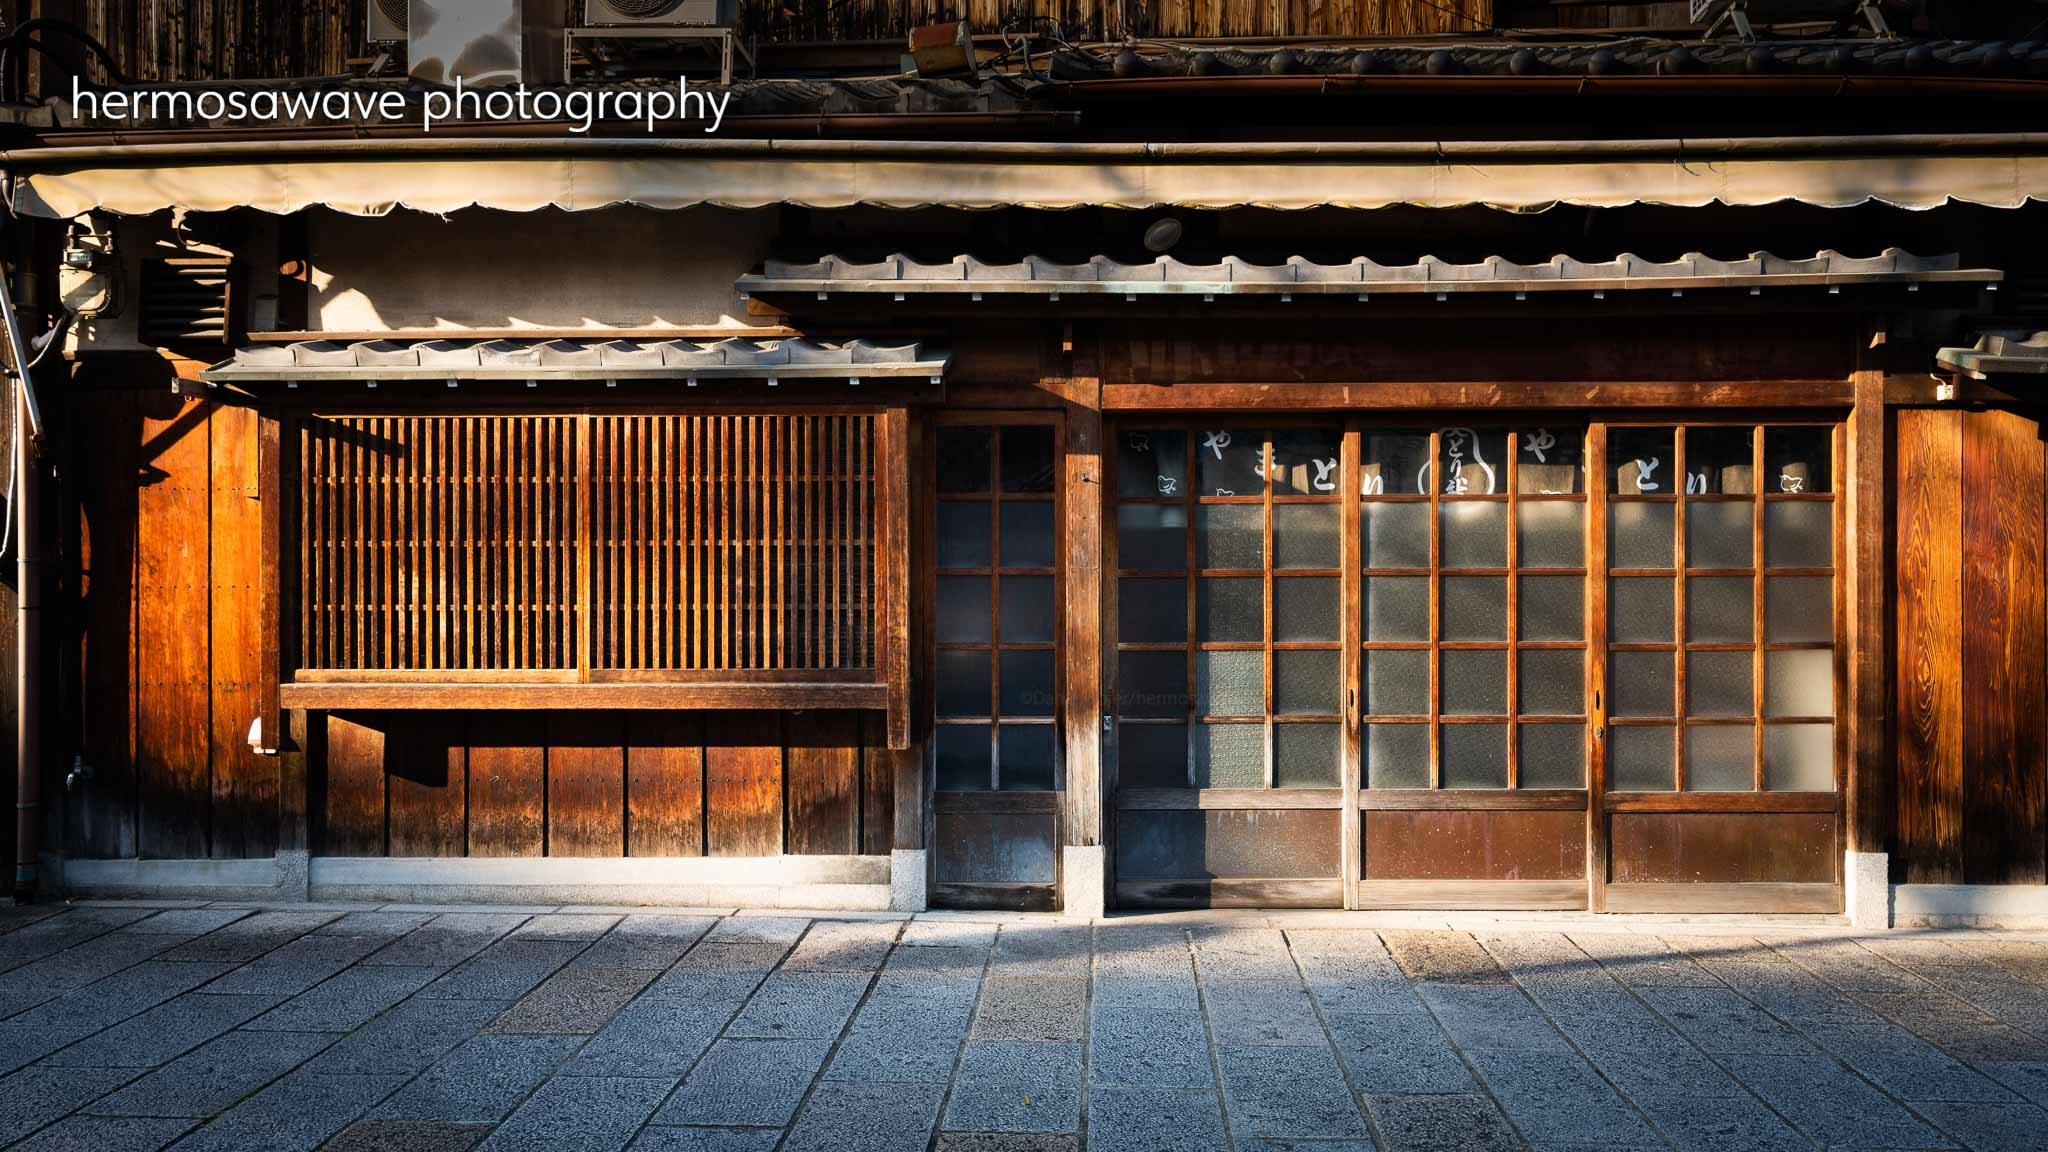 Golden Hour in Gion・祇園のマジックアワー